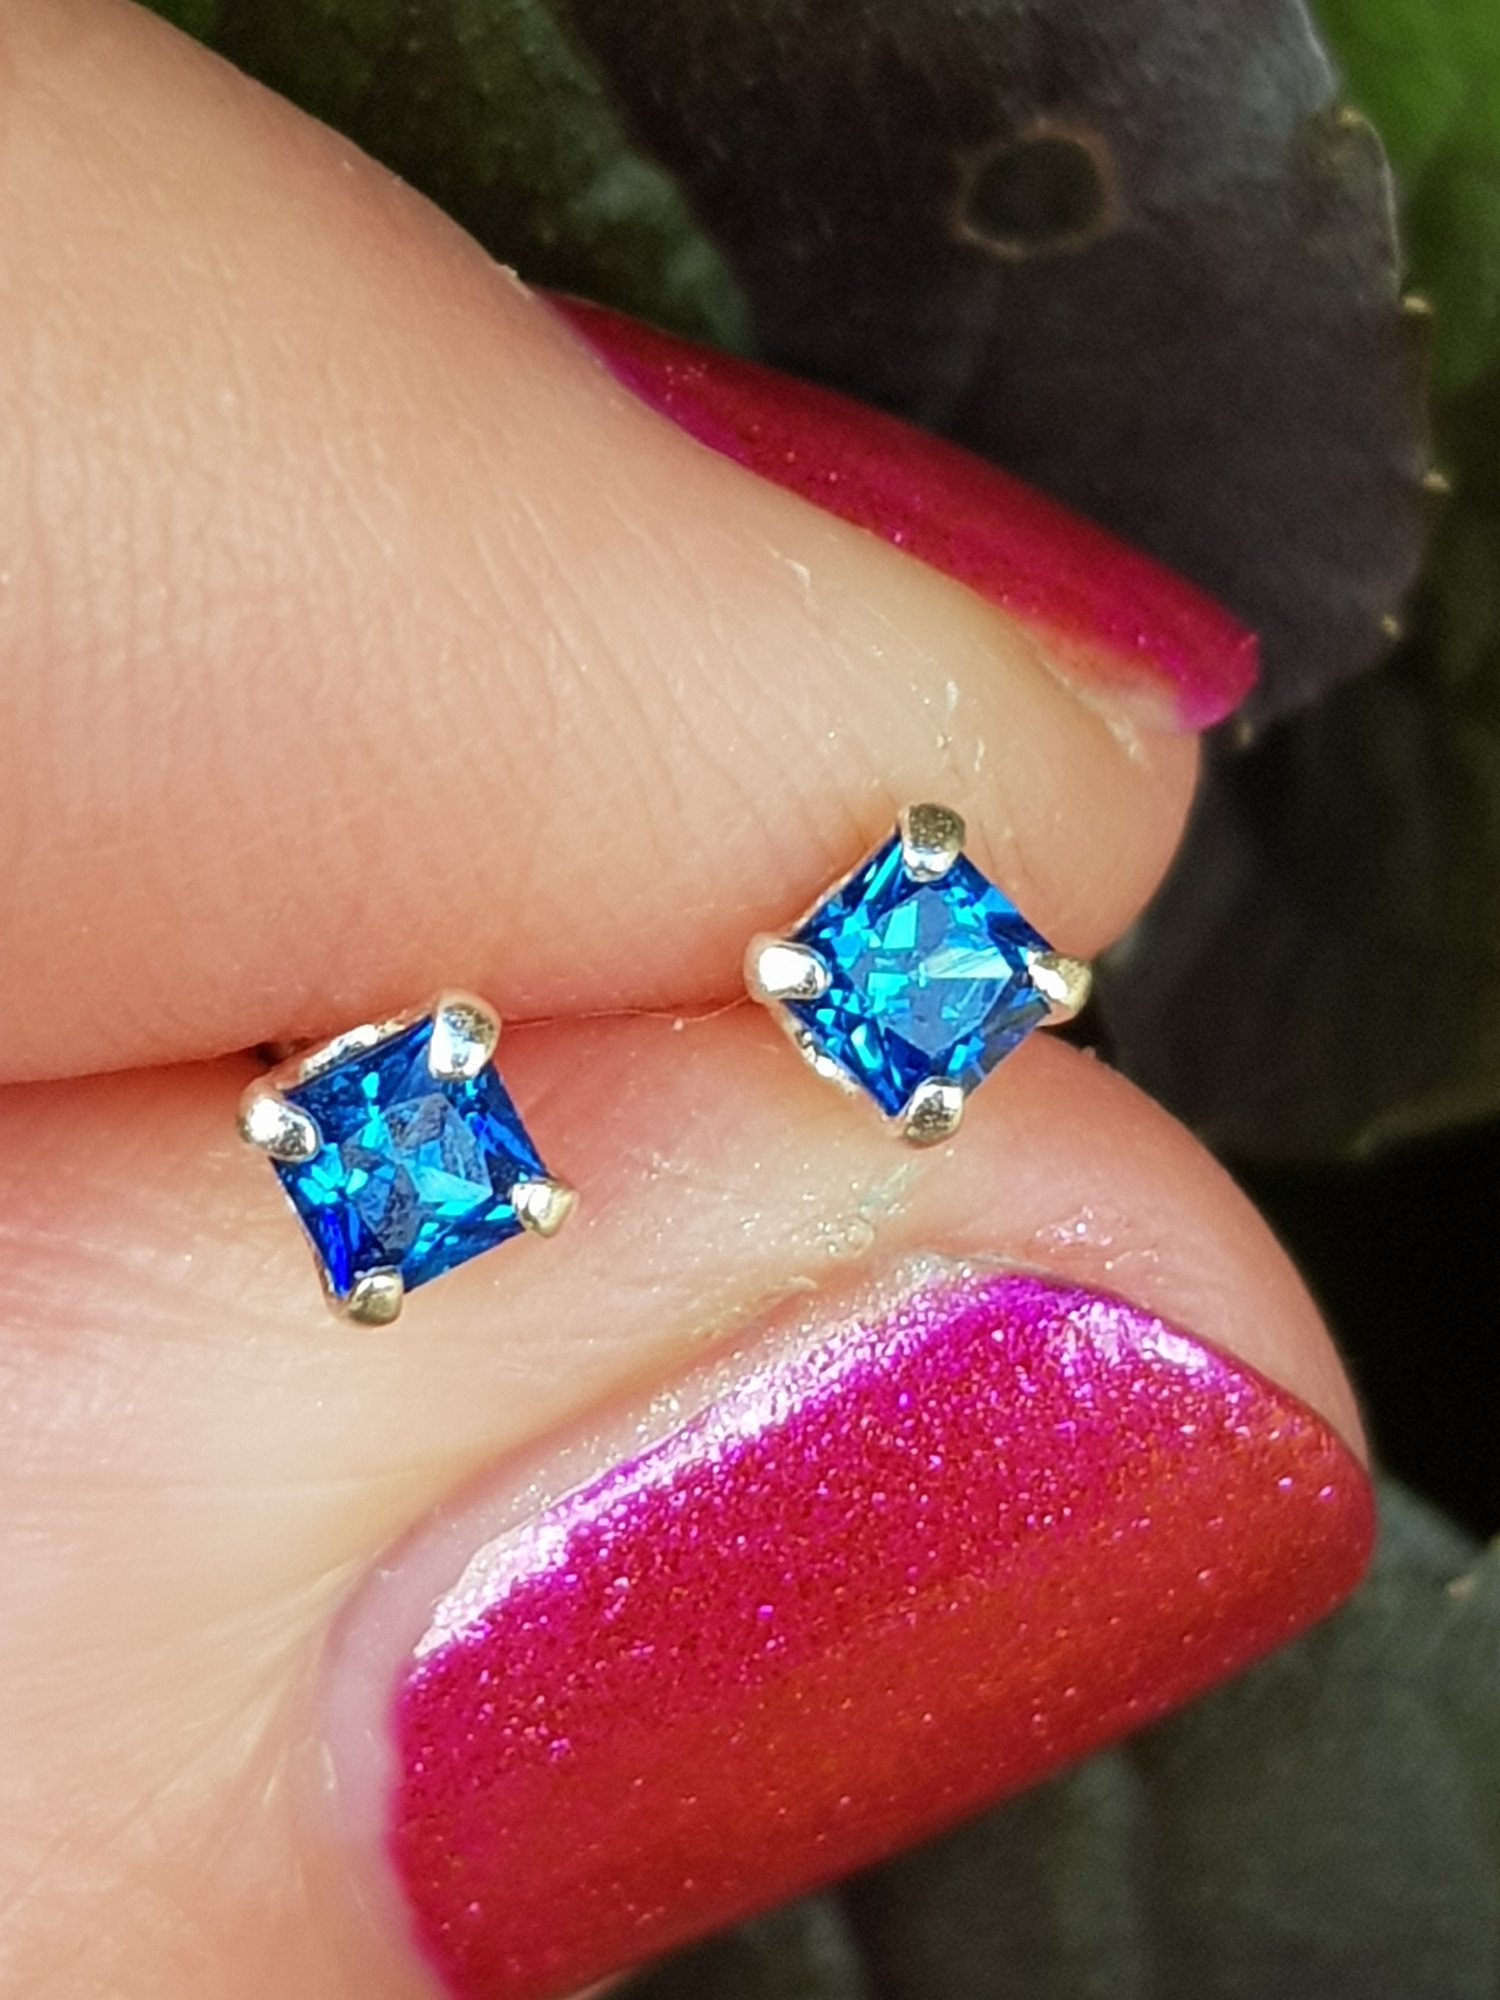 LIMITED STOCK - Silver, square cubic zirconia medium sapphire stud earrings - ONLY £9.95